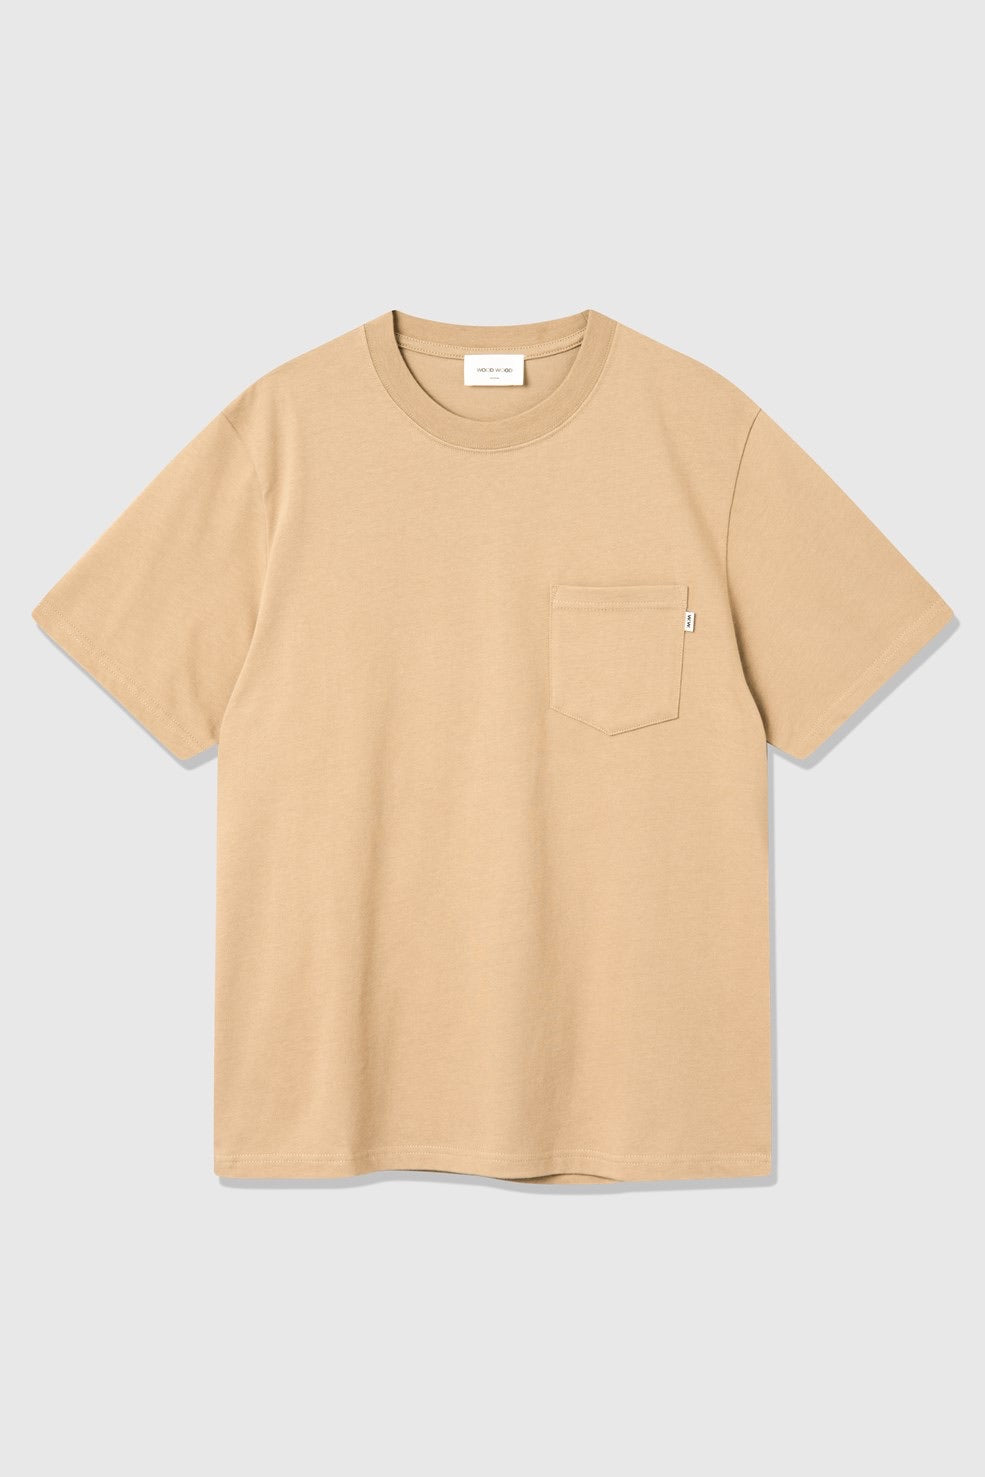 WOOD WOOD BOBBY POCKET T-SHIRT